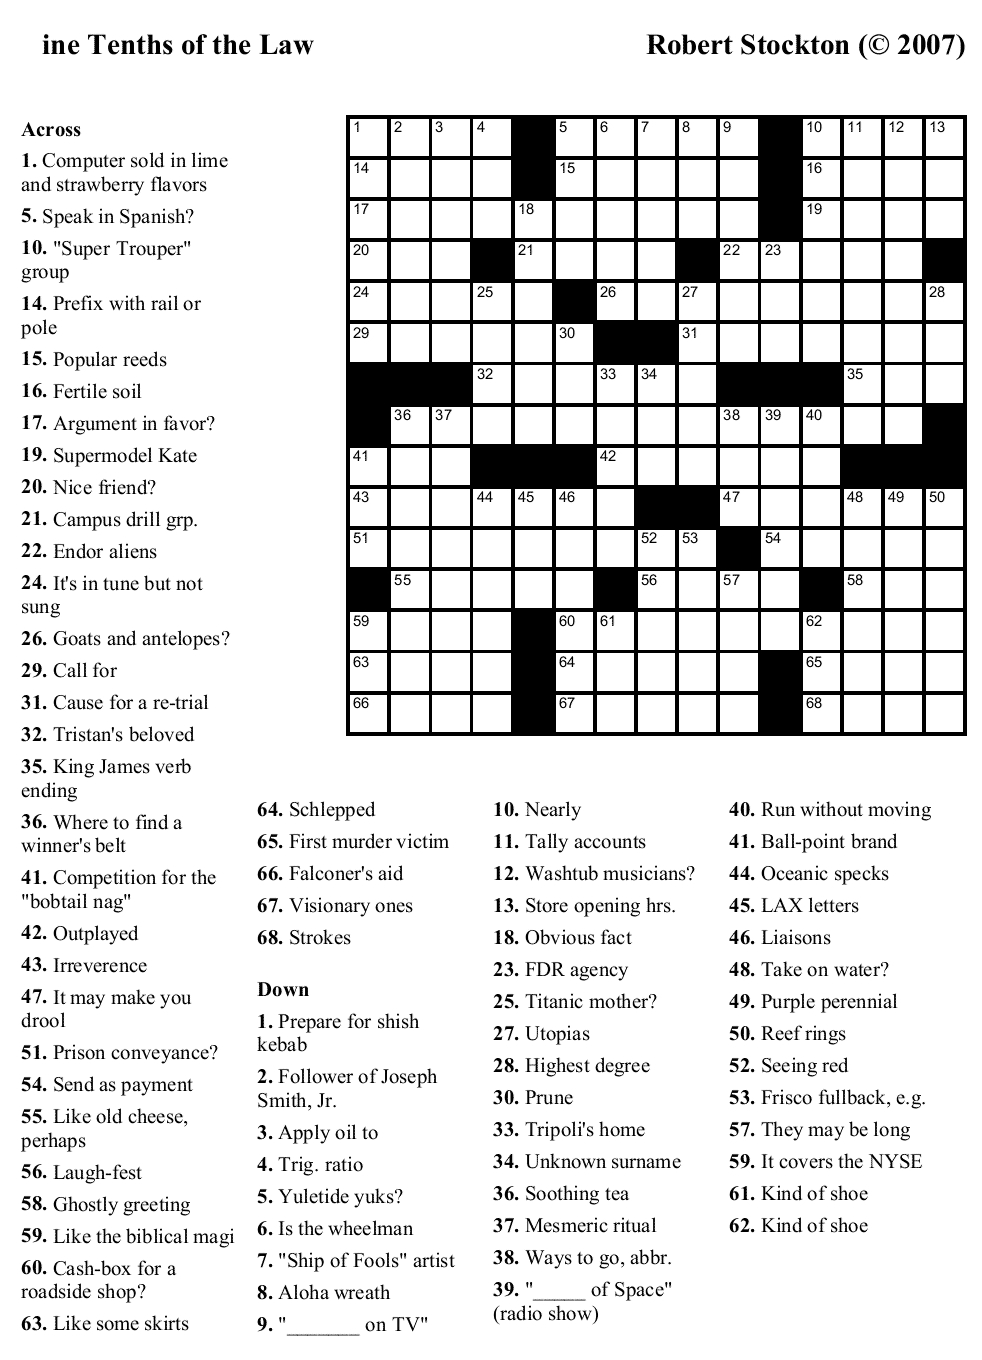 Easy Printable Crossword Puzzels - Infocap Ltd. - Easy Crossword Puzzles With Answers Printable